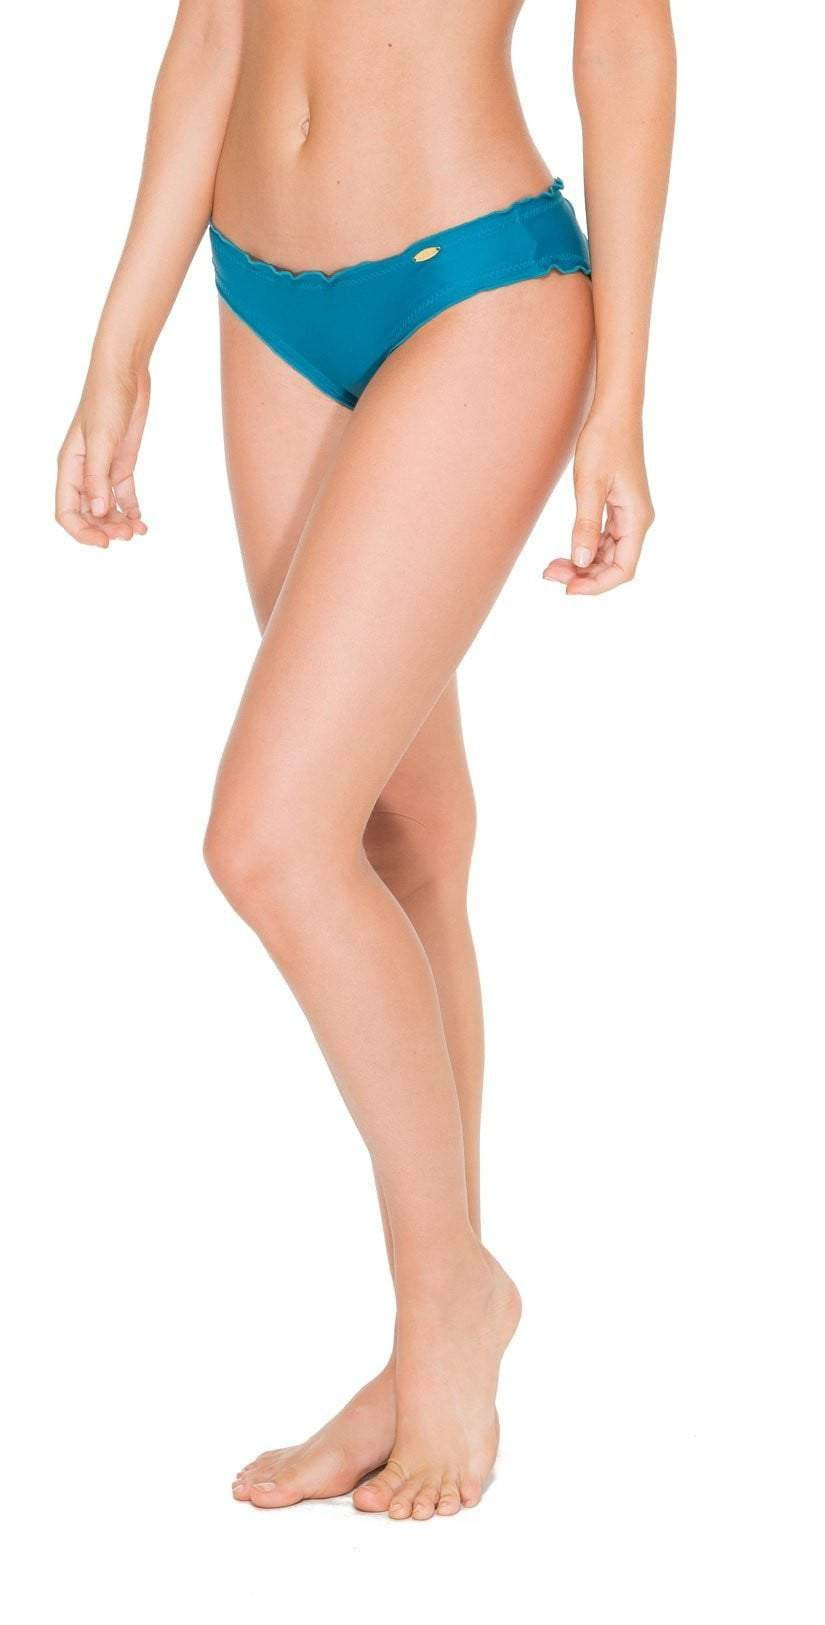 Luli Fama Cosita Buena Full Bottom in Miramar L176521-428: